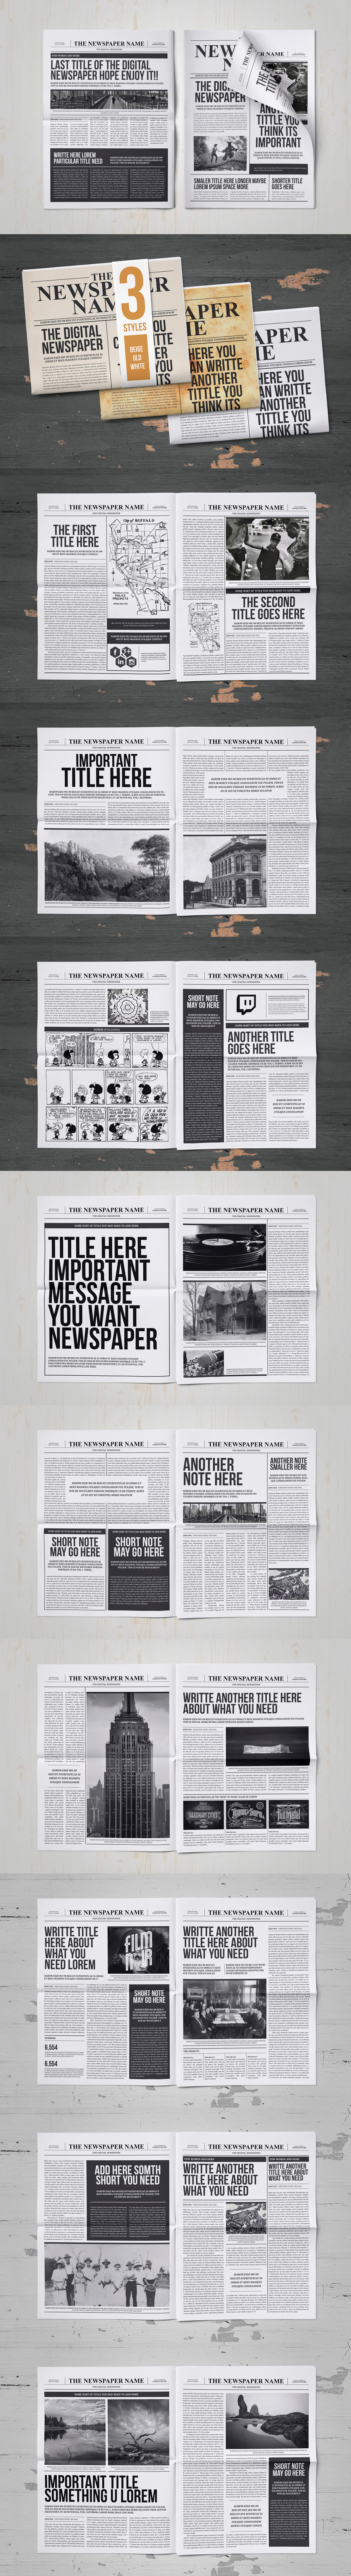 Classy Newspaper Indesign Template InDesign INDD - 20 Pages ...